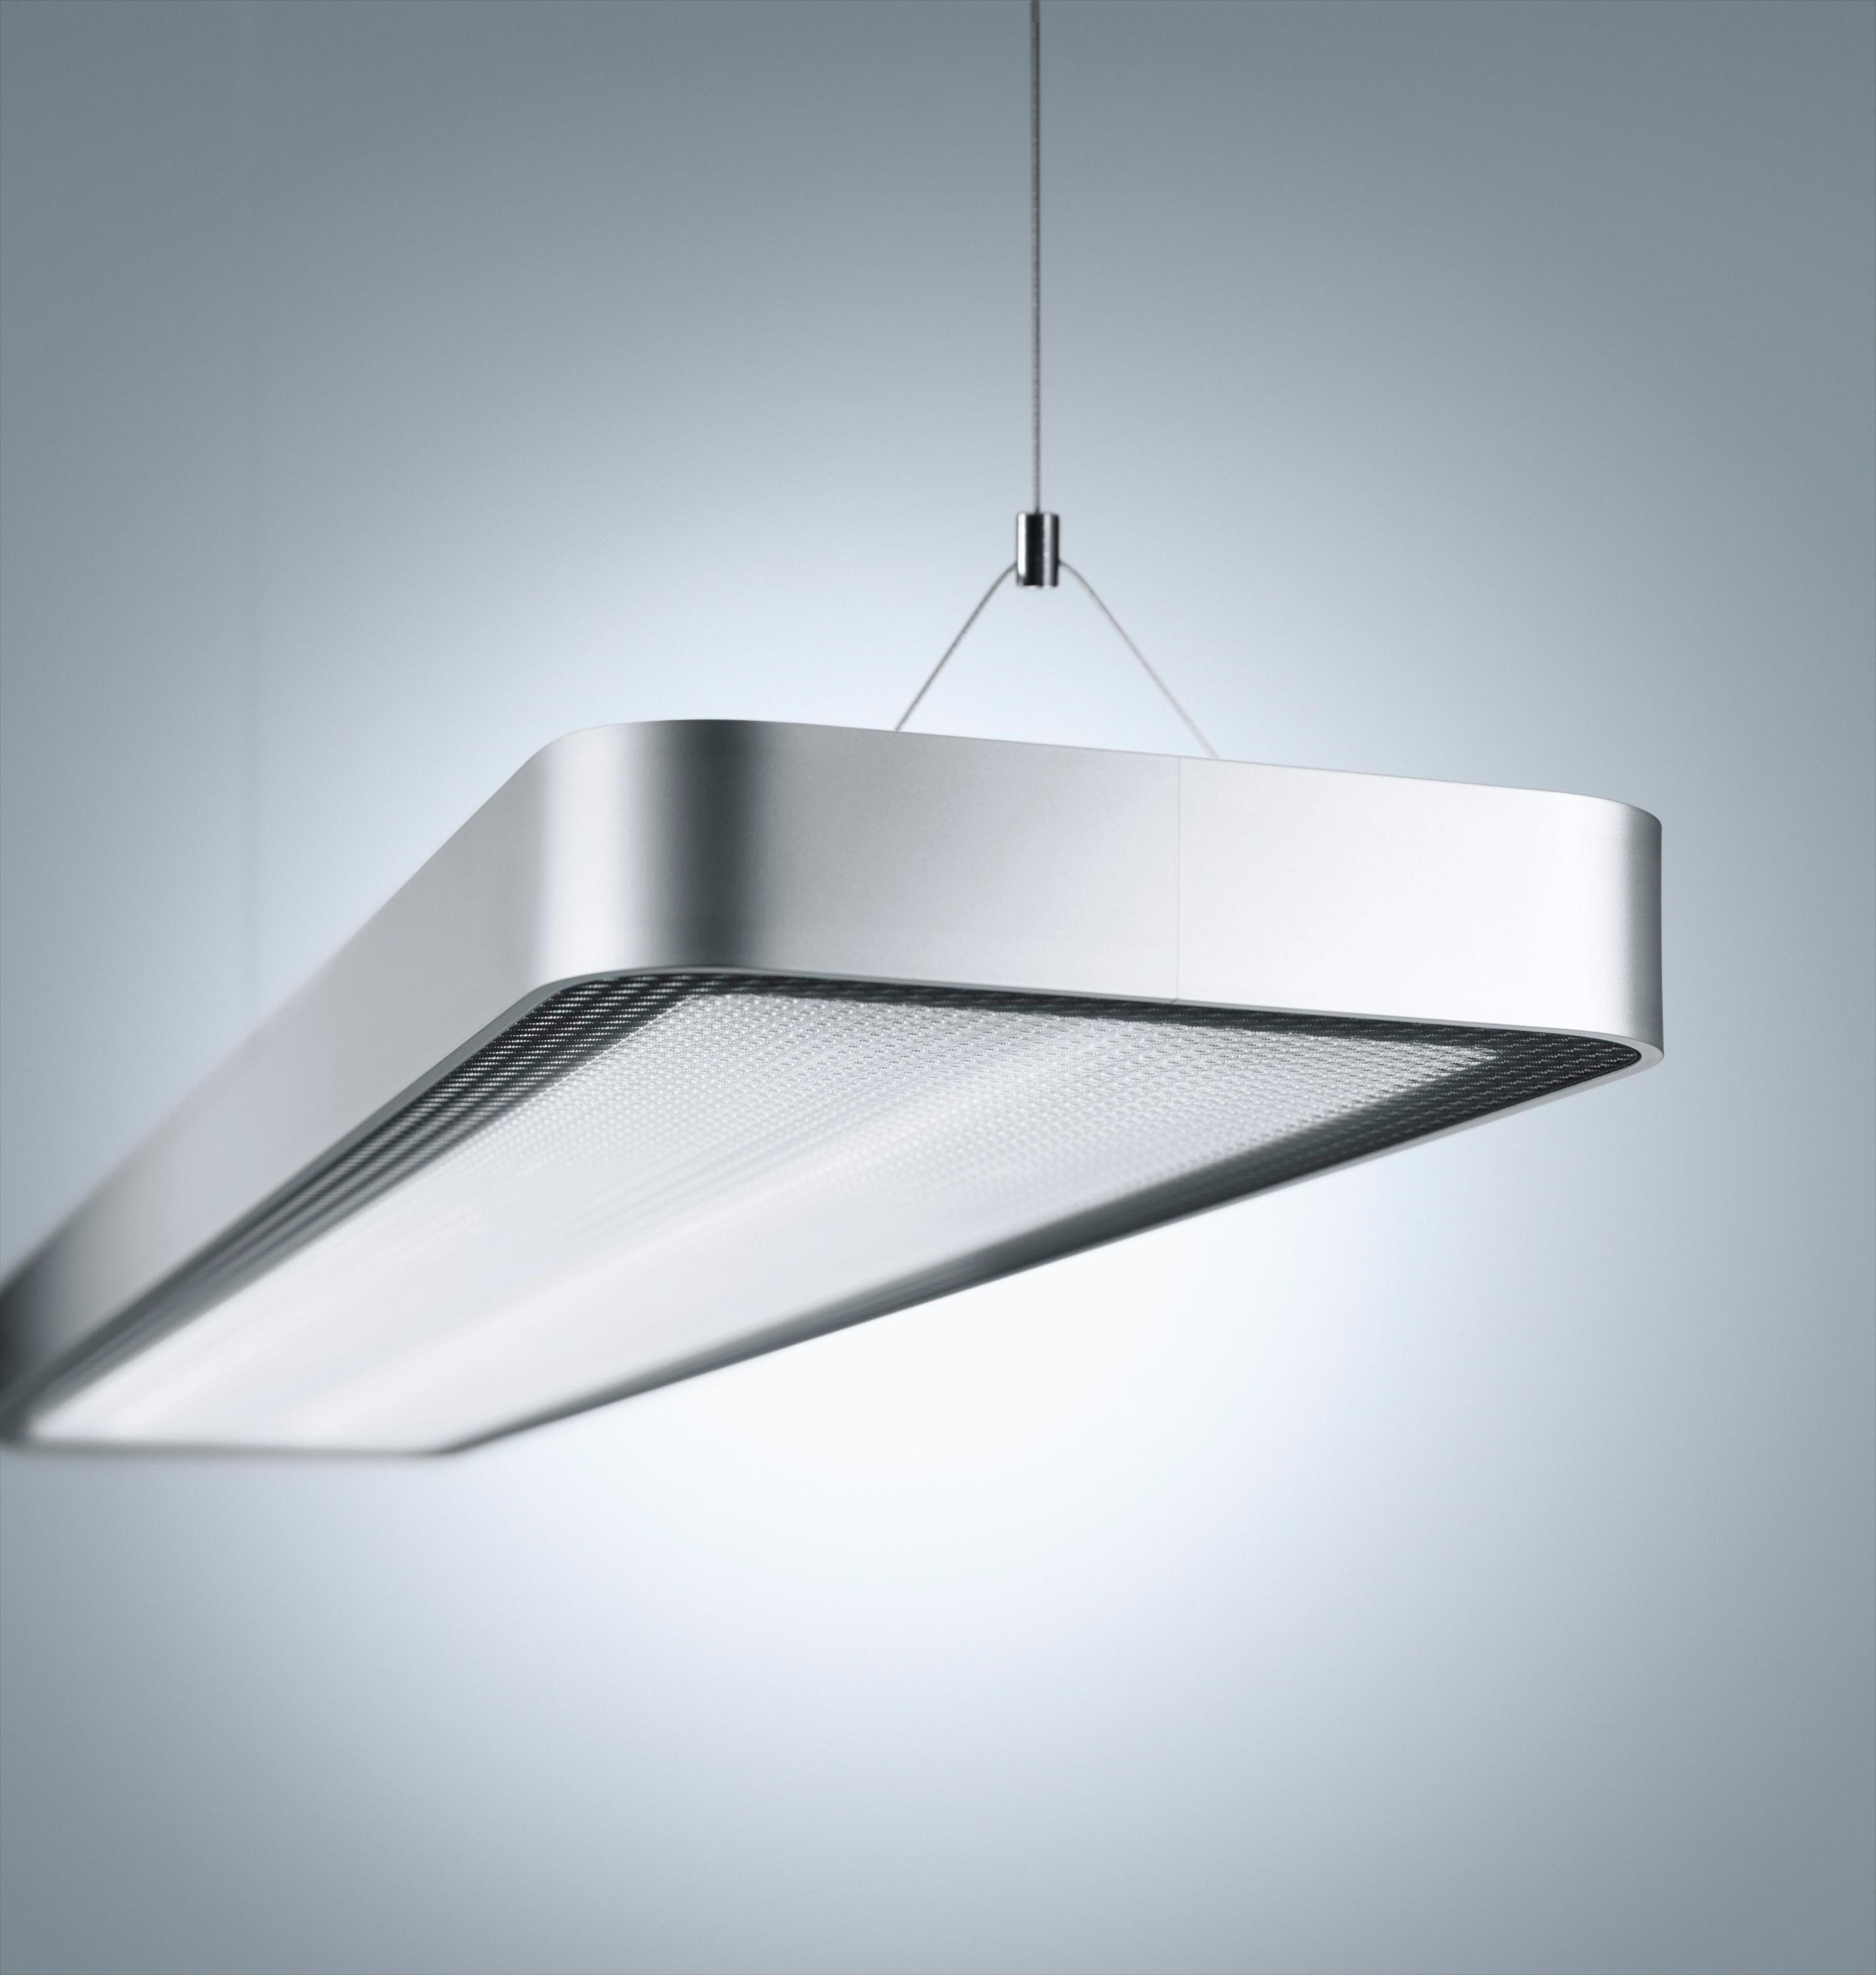 Ataro dup 254 suspended luminaire general lighting from for Luminaire suspension